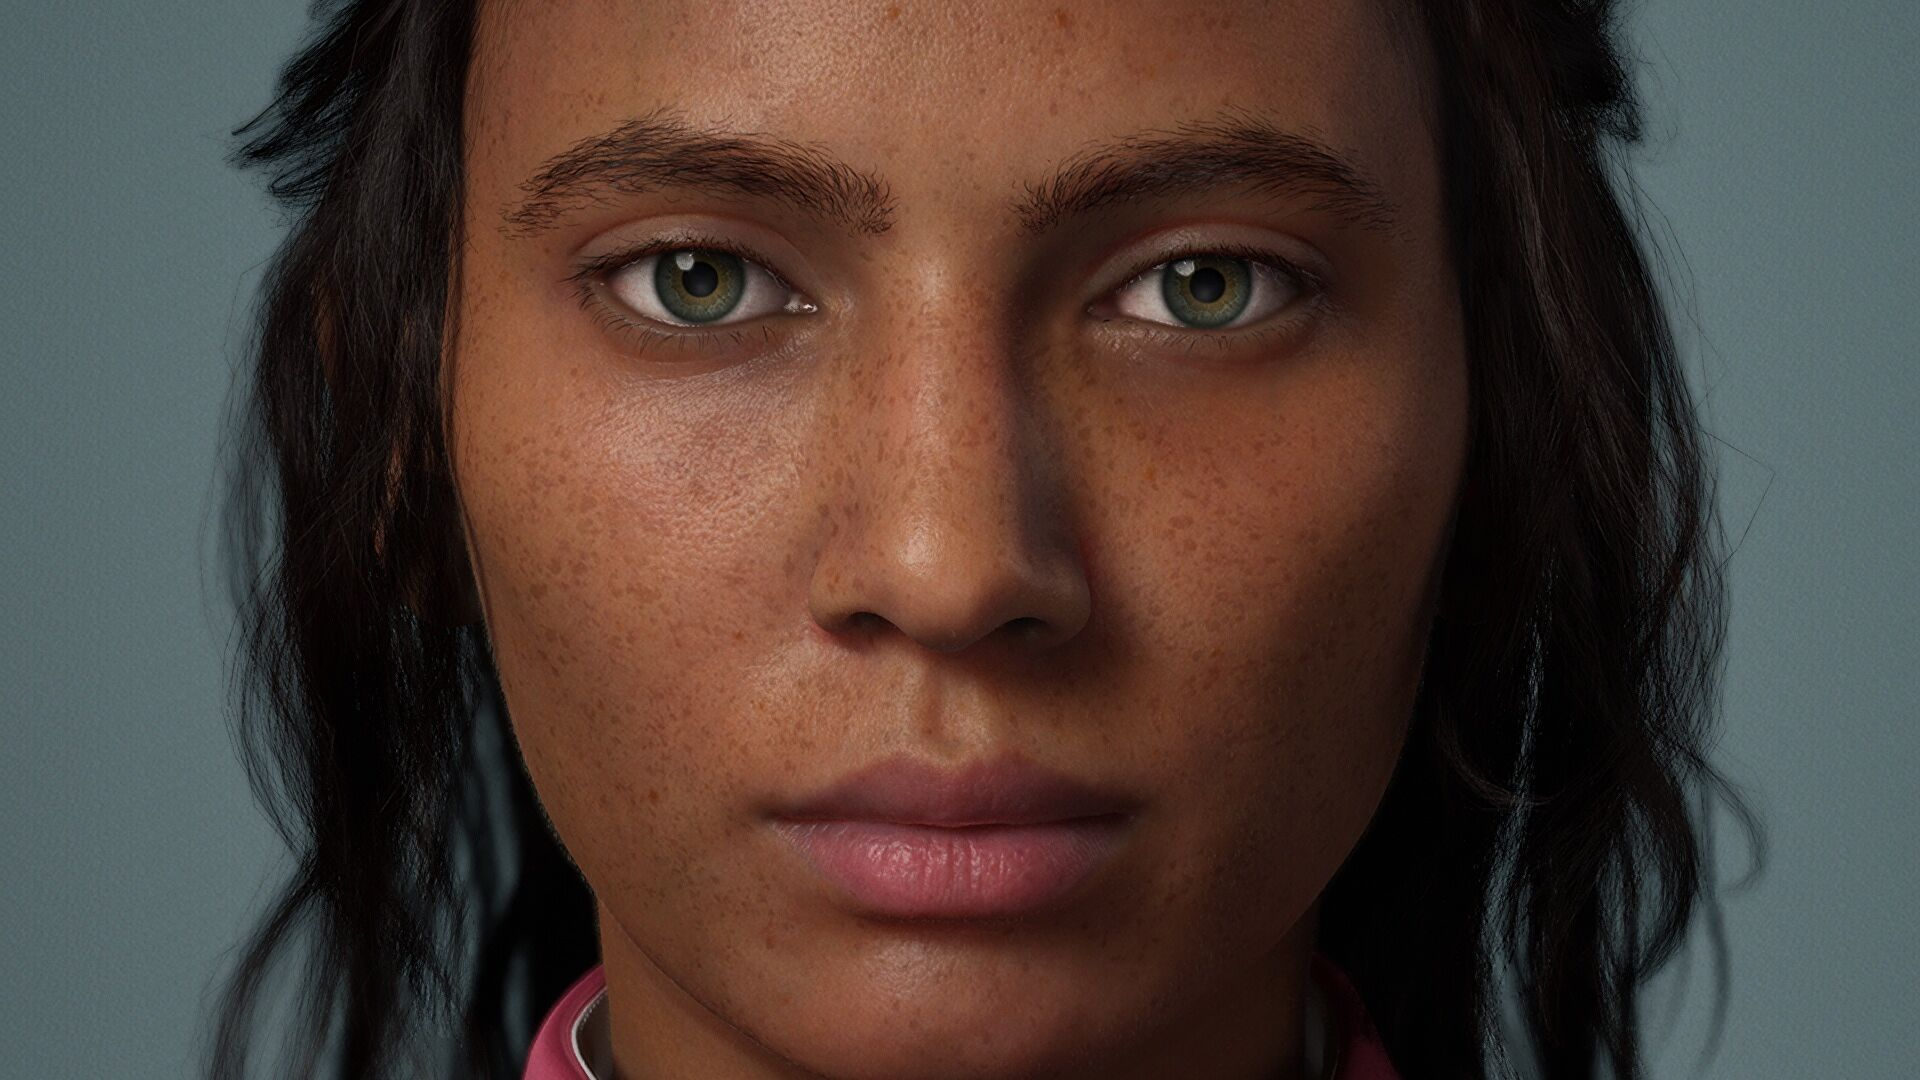 Epic's tool for creating human faces is out in early access now - Rock Paper Shotgun